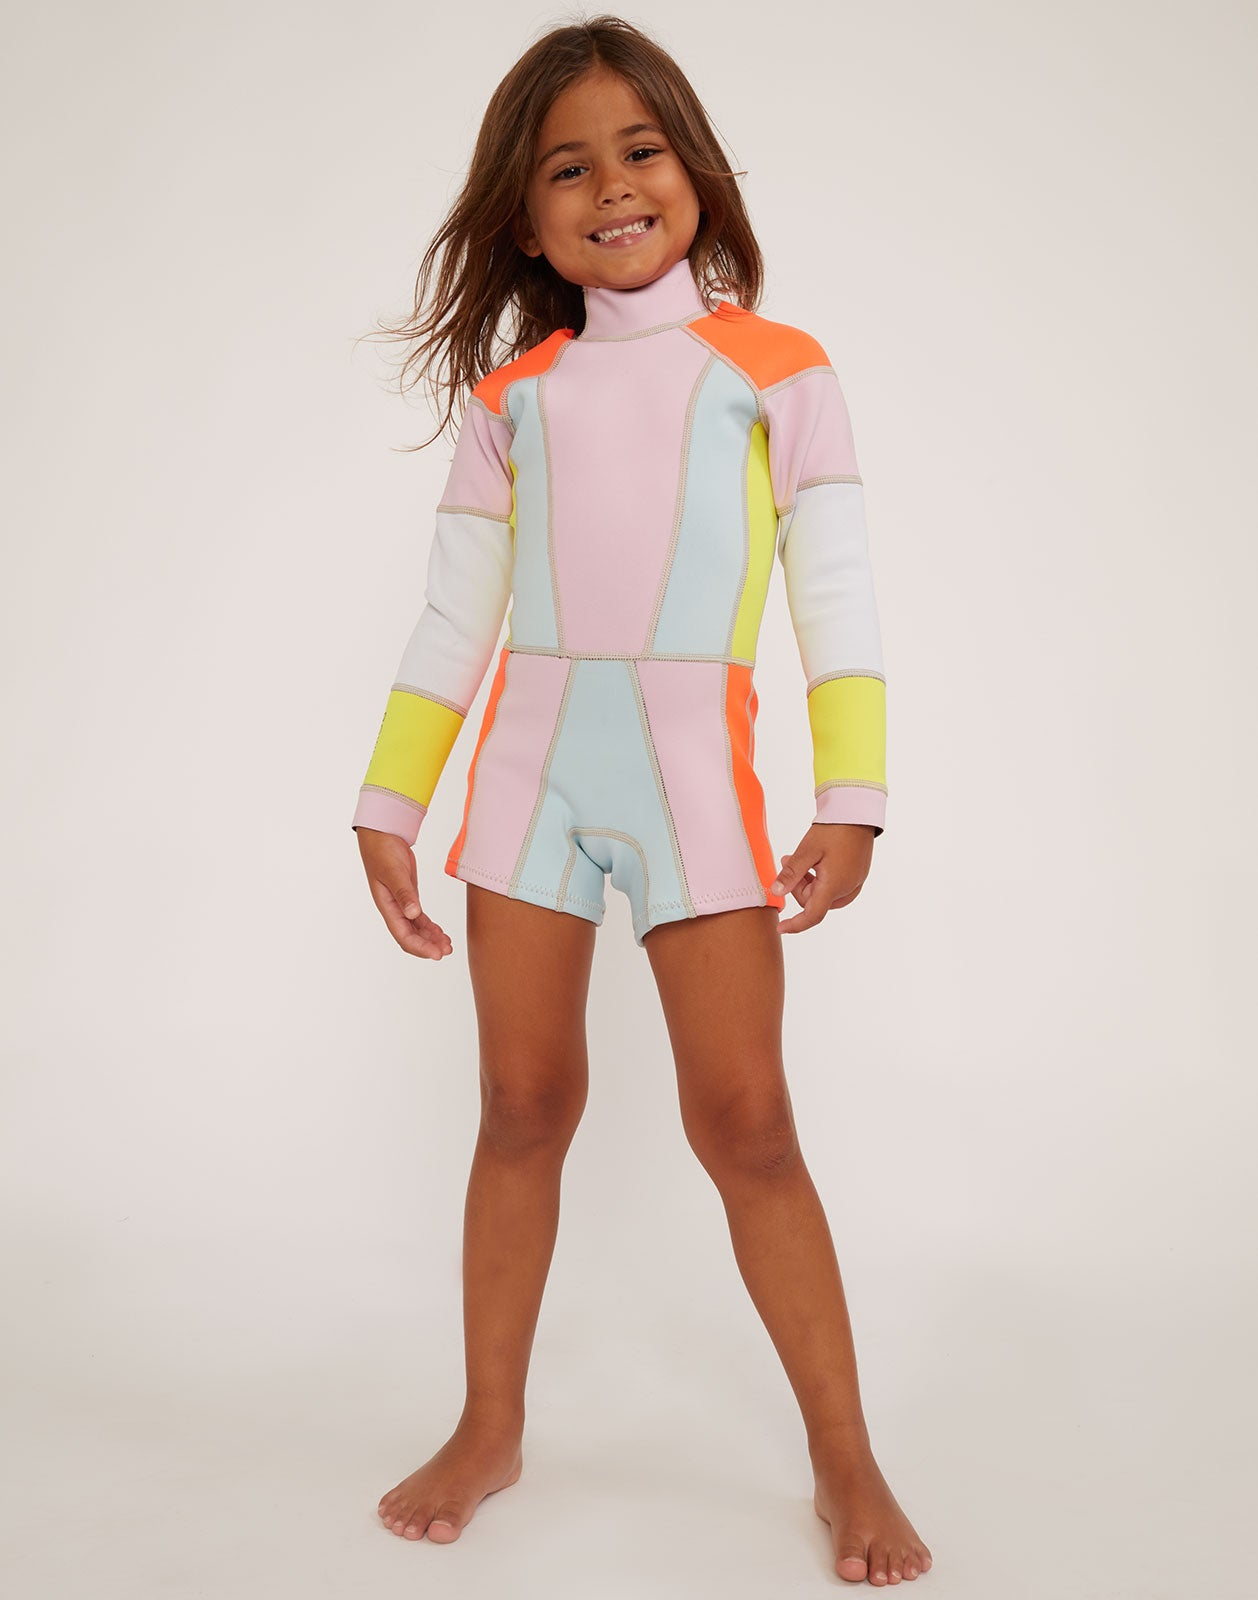 Model wearing the kids colorblock wetsuit.